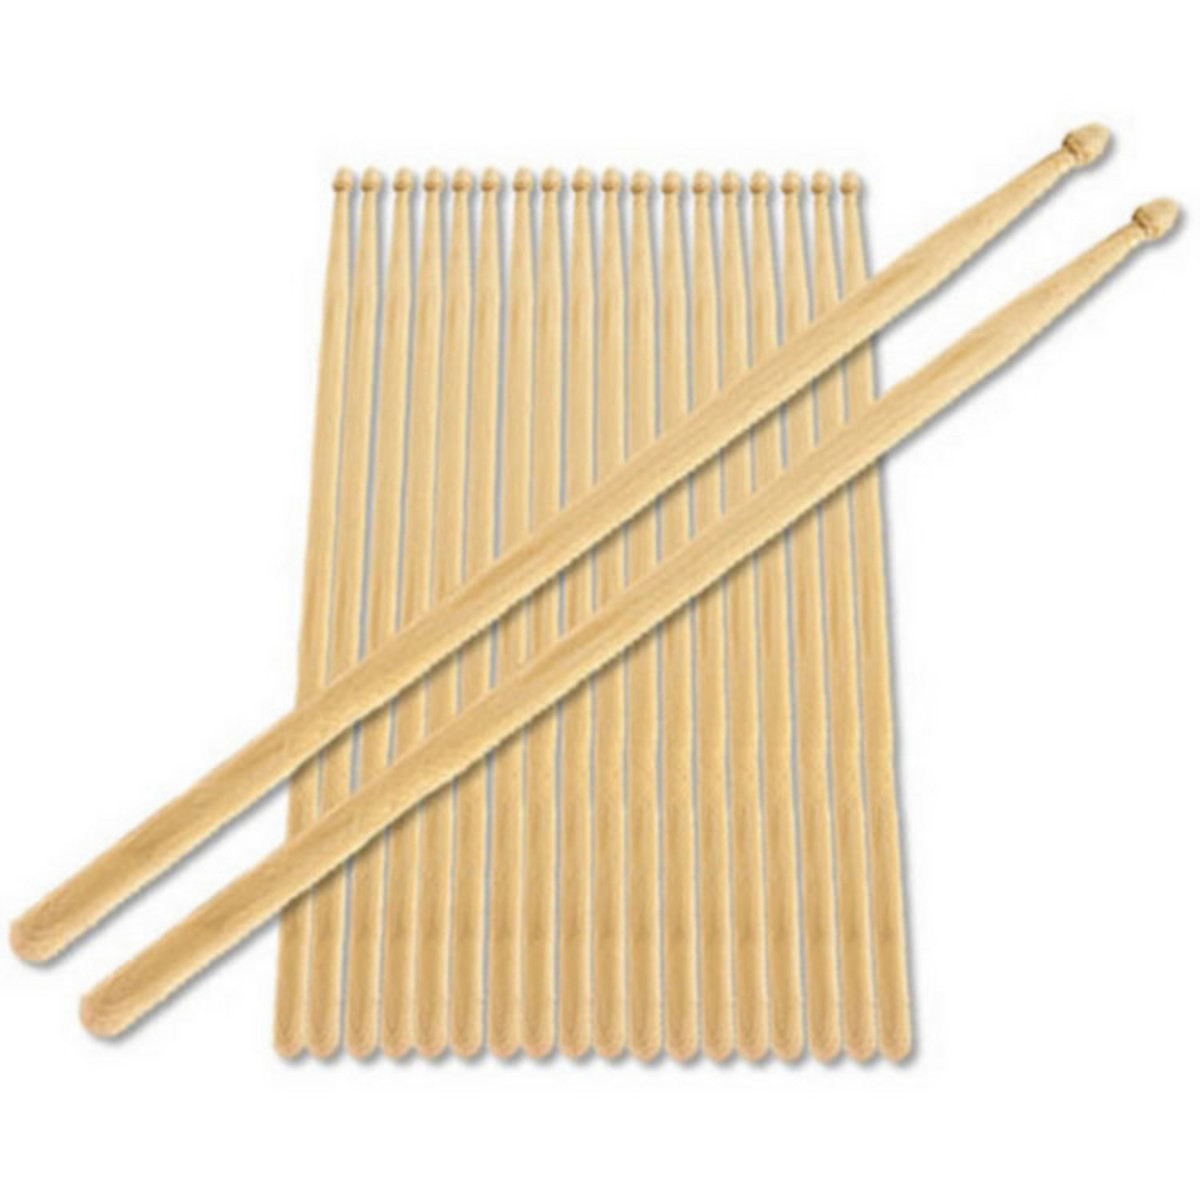 2B Nylon Tip Drumstick Bundle Pack of 10